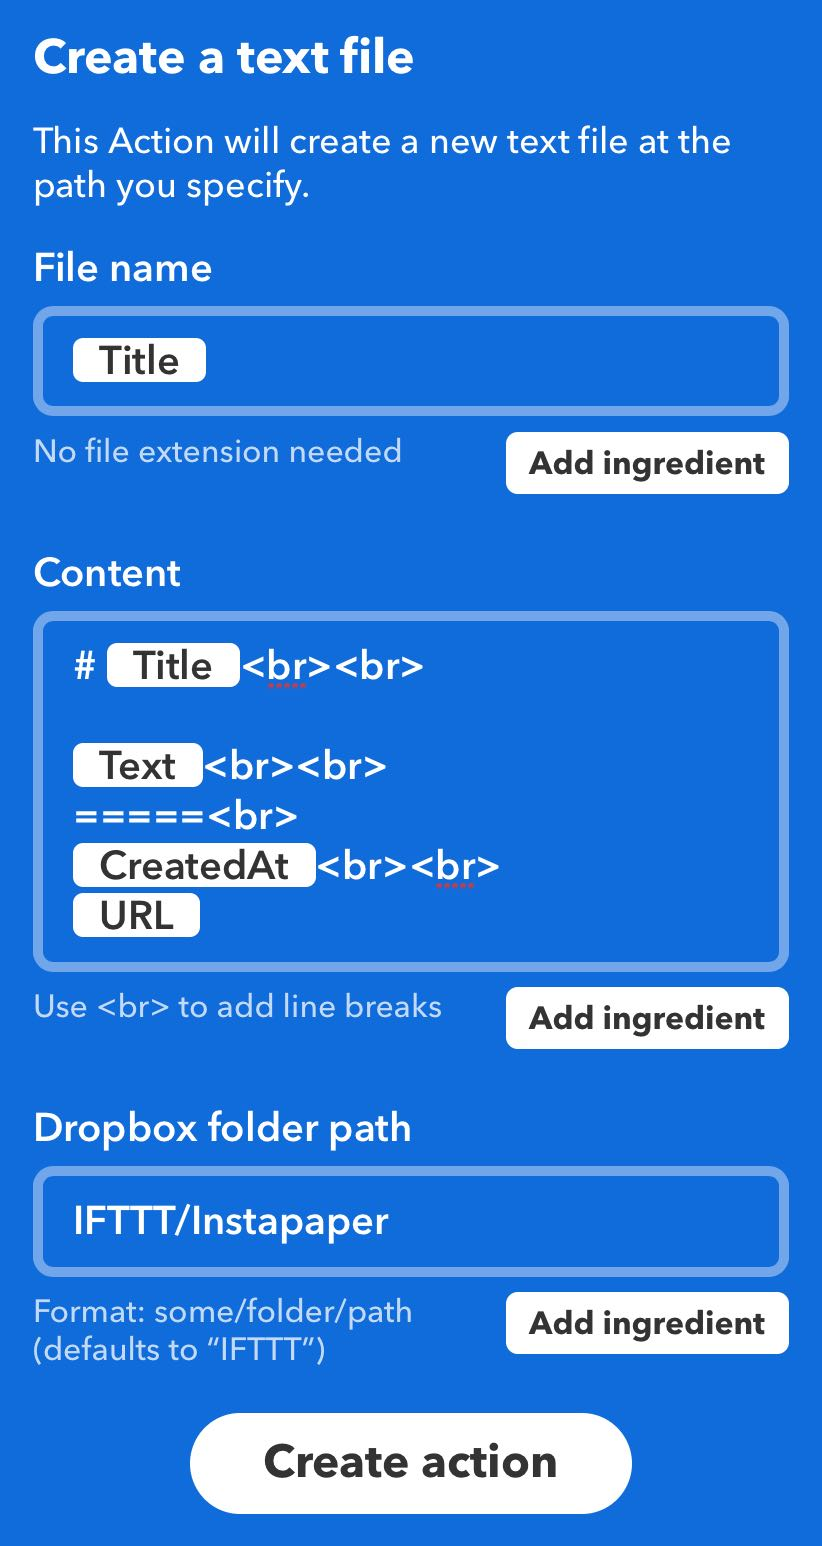 IFTTT recipe for sending Instapaper highlights to a new file in a Dropbox folder